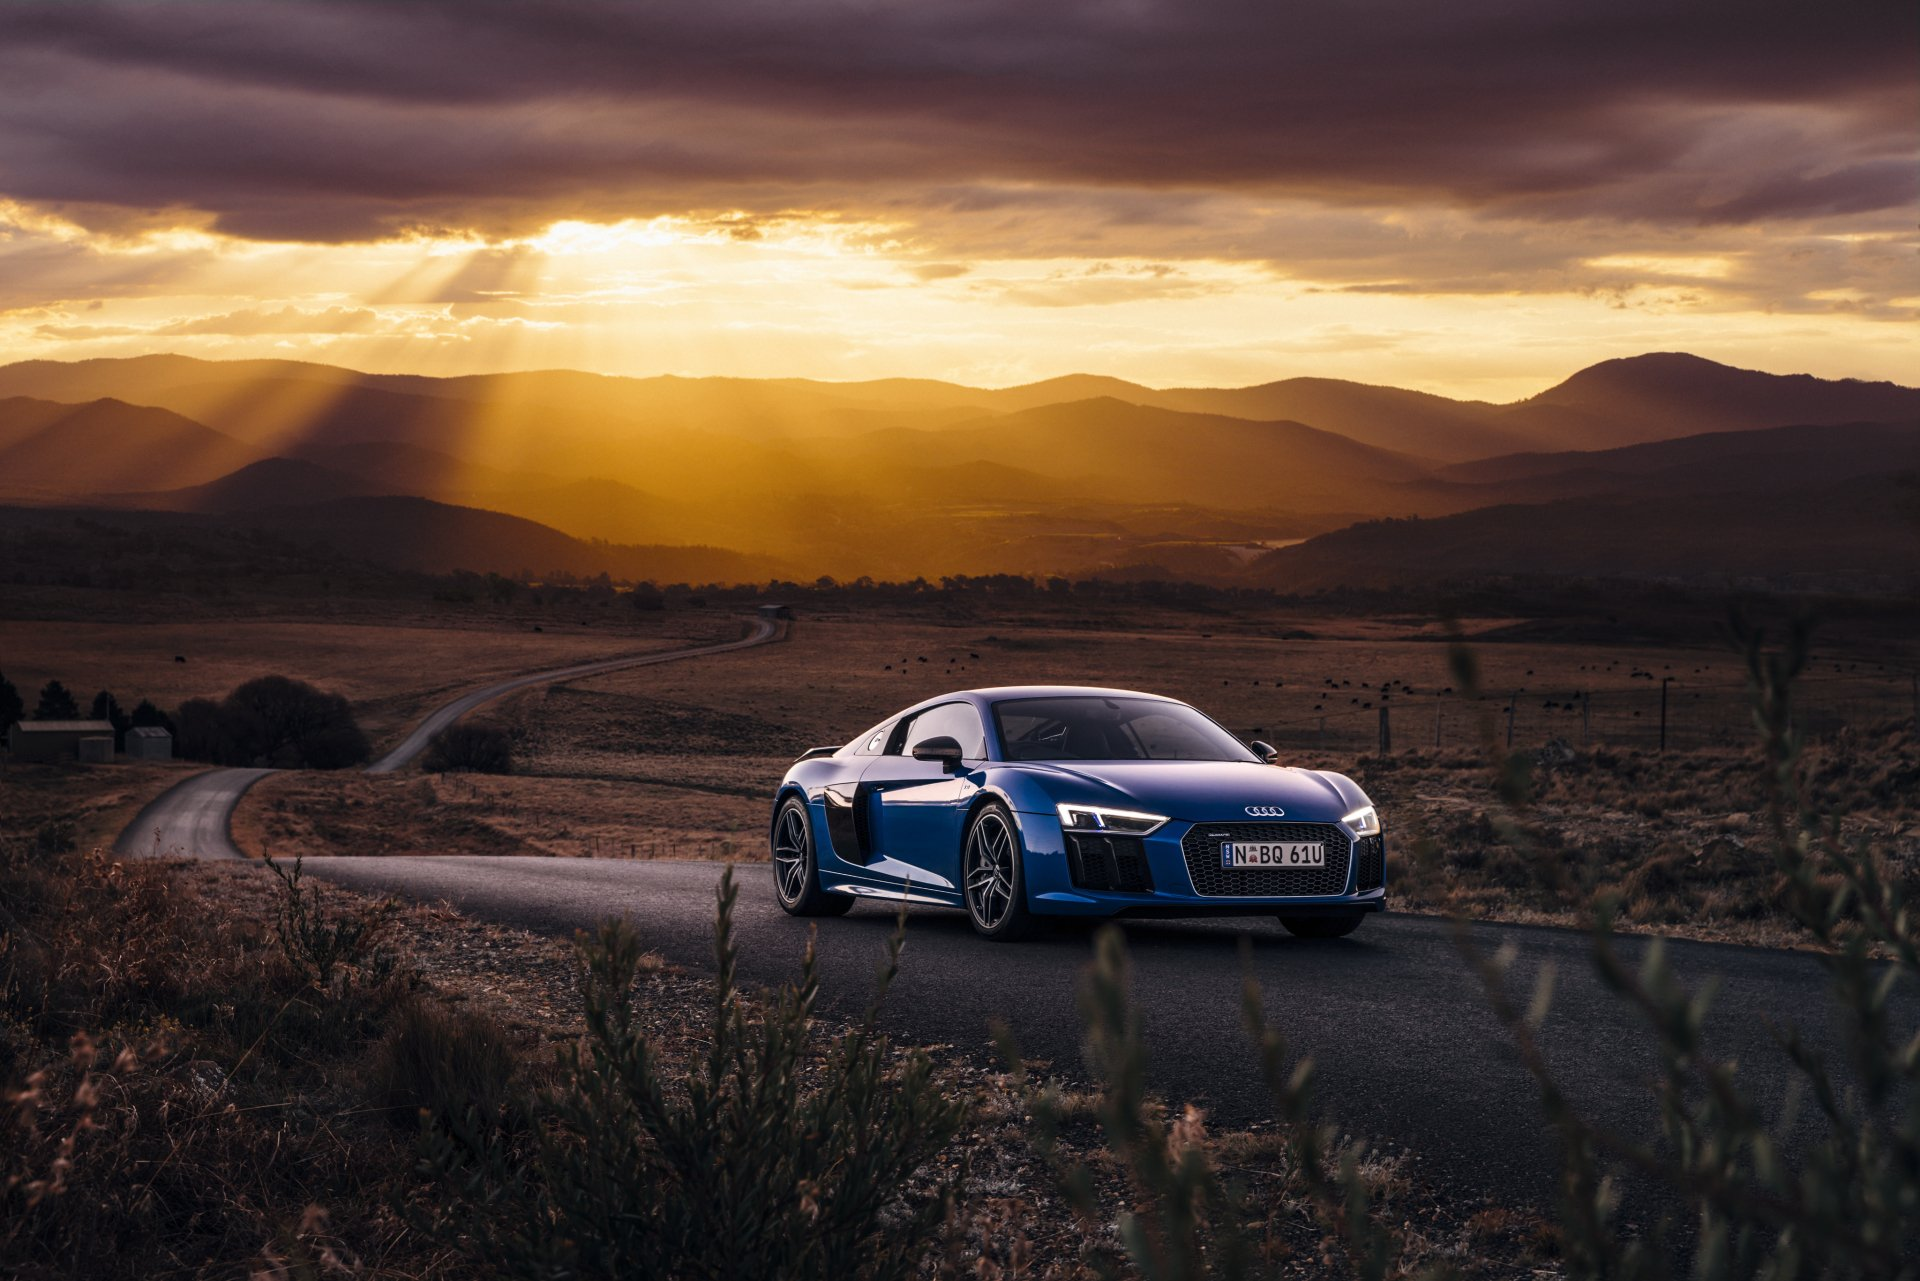 Vehicles - Audi R8  Audi Supercar Sport Car Blue Car Car Vehicle Audi R8 V10 Road Wallpaper